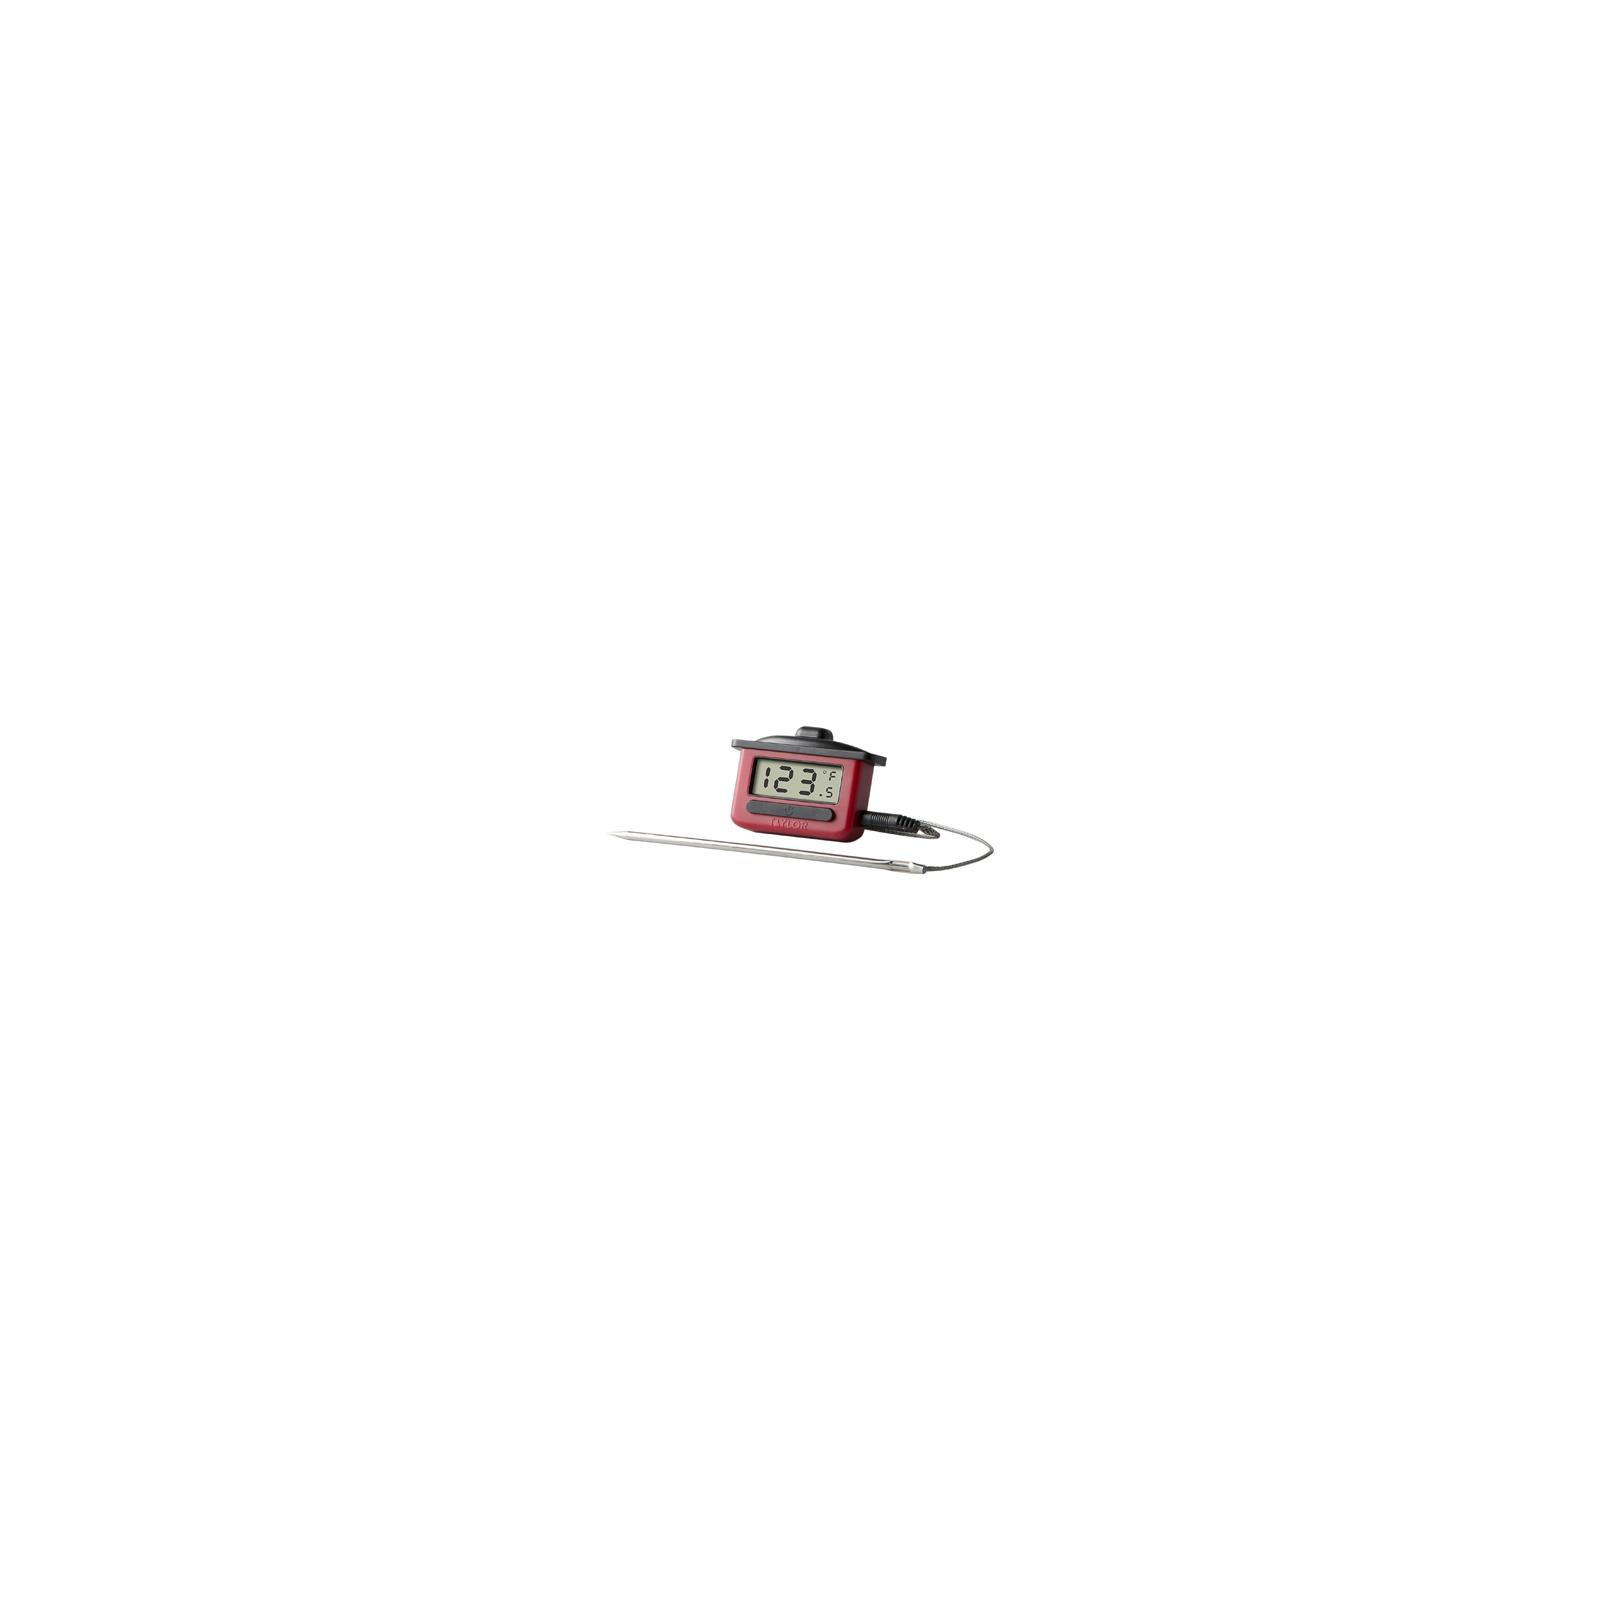 Taylor-Precision-Products-9849-Slow-Cooker-Thermometer-Quantity-1 thumbnail 2